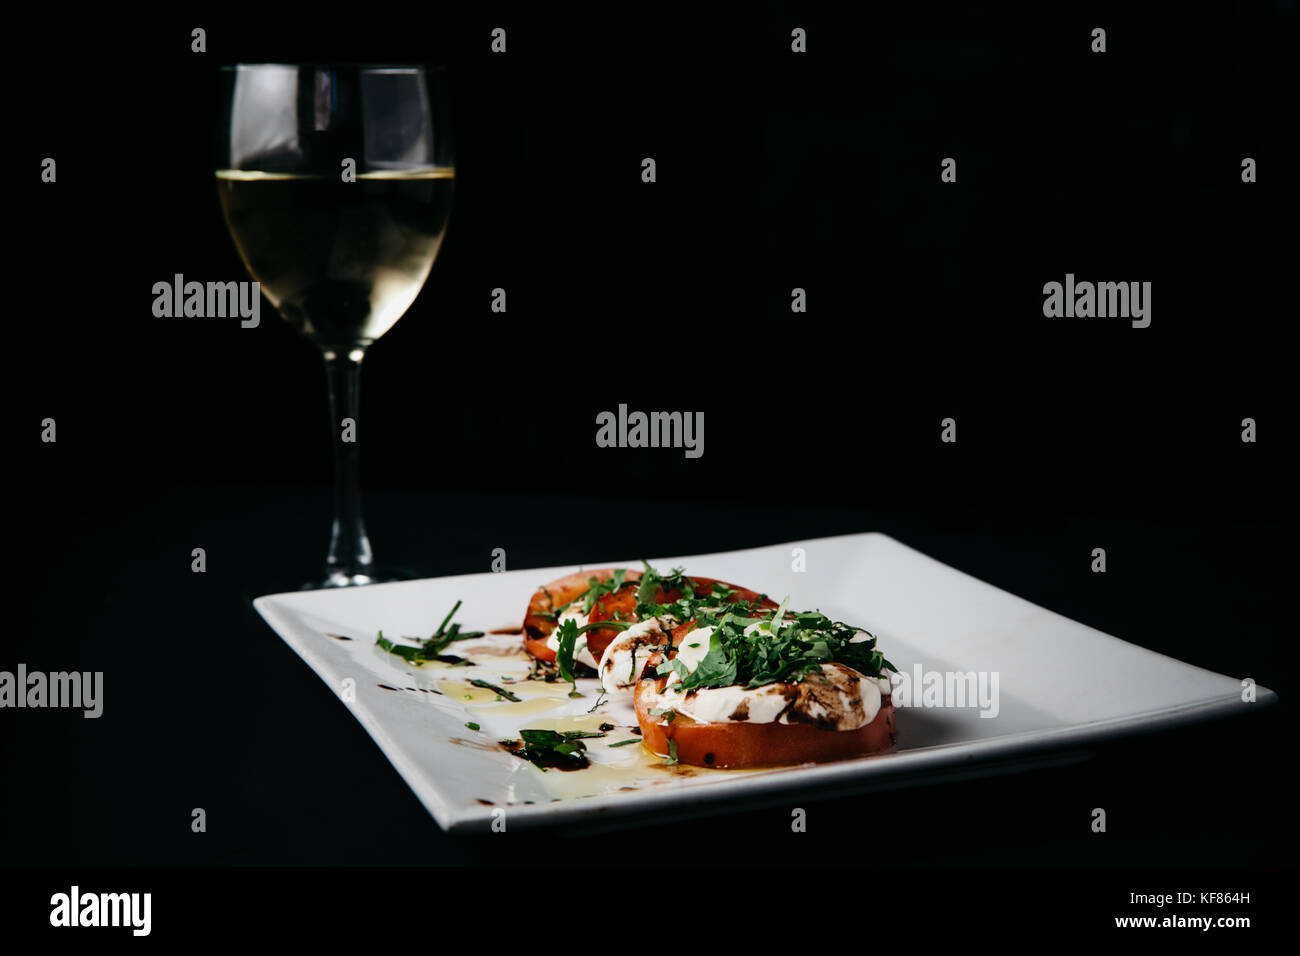 Fresh italian caprese salad with mozzarella cheese, tomatoes and basil on a white plate and black background - Stock Image